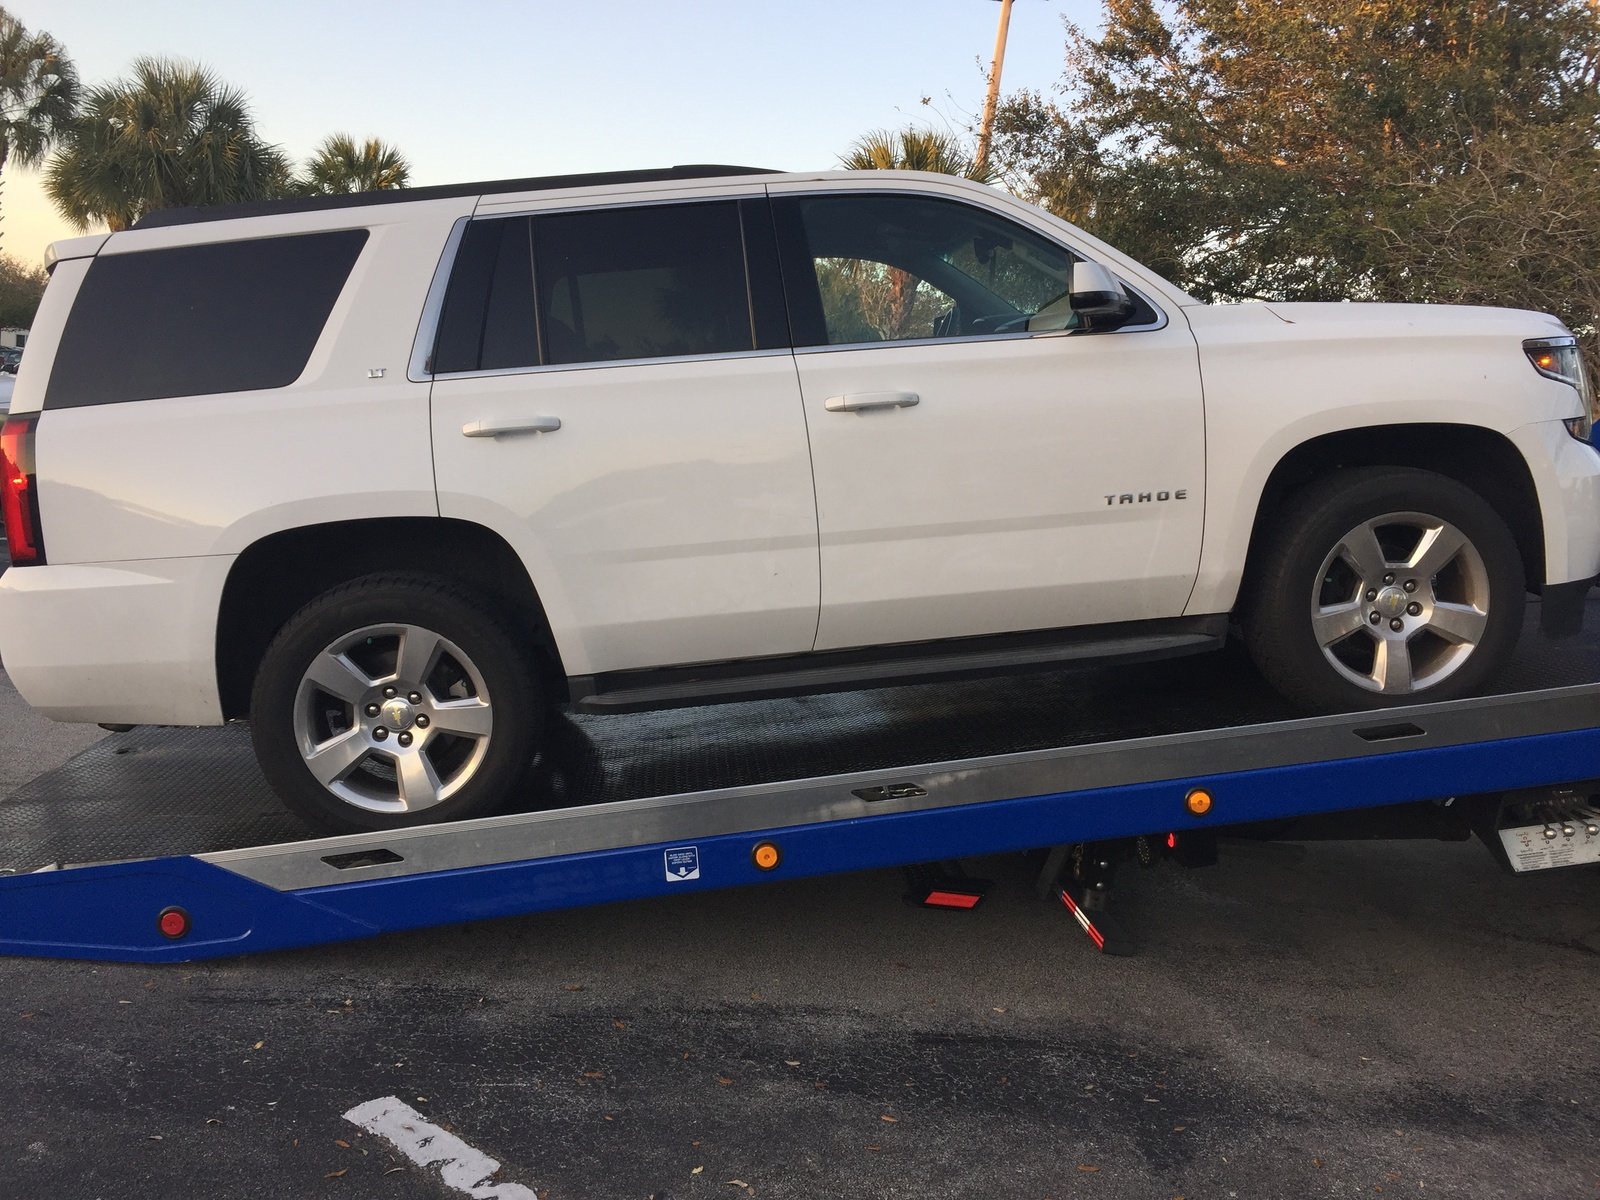 midnight chevy lexus flexfuel for tahoe find sale police nj vehicles or forums hard blue trade chevrolet ppv to non